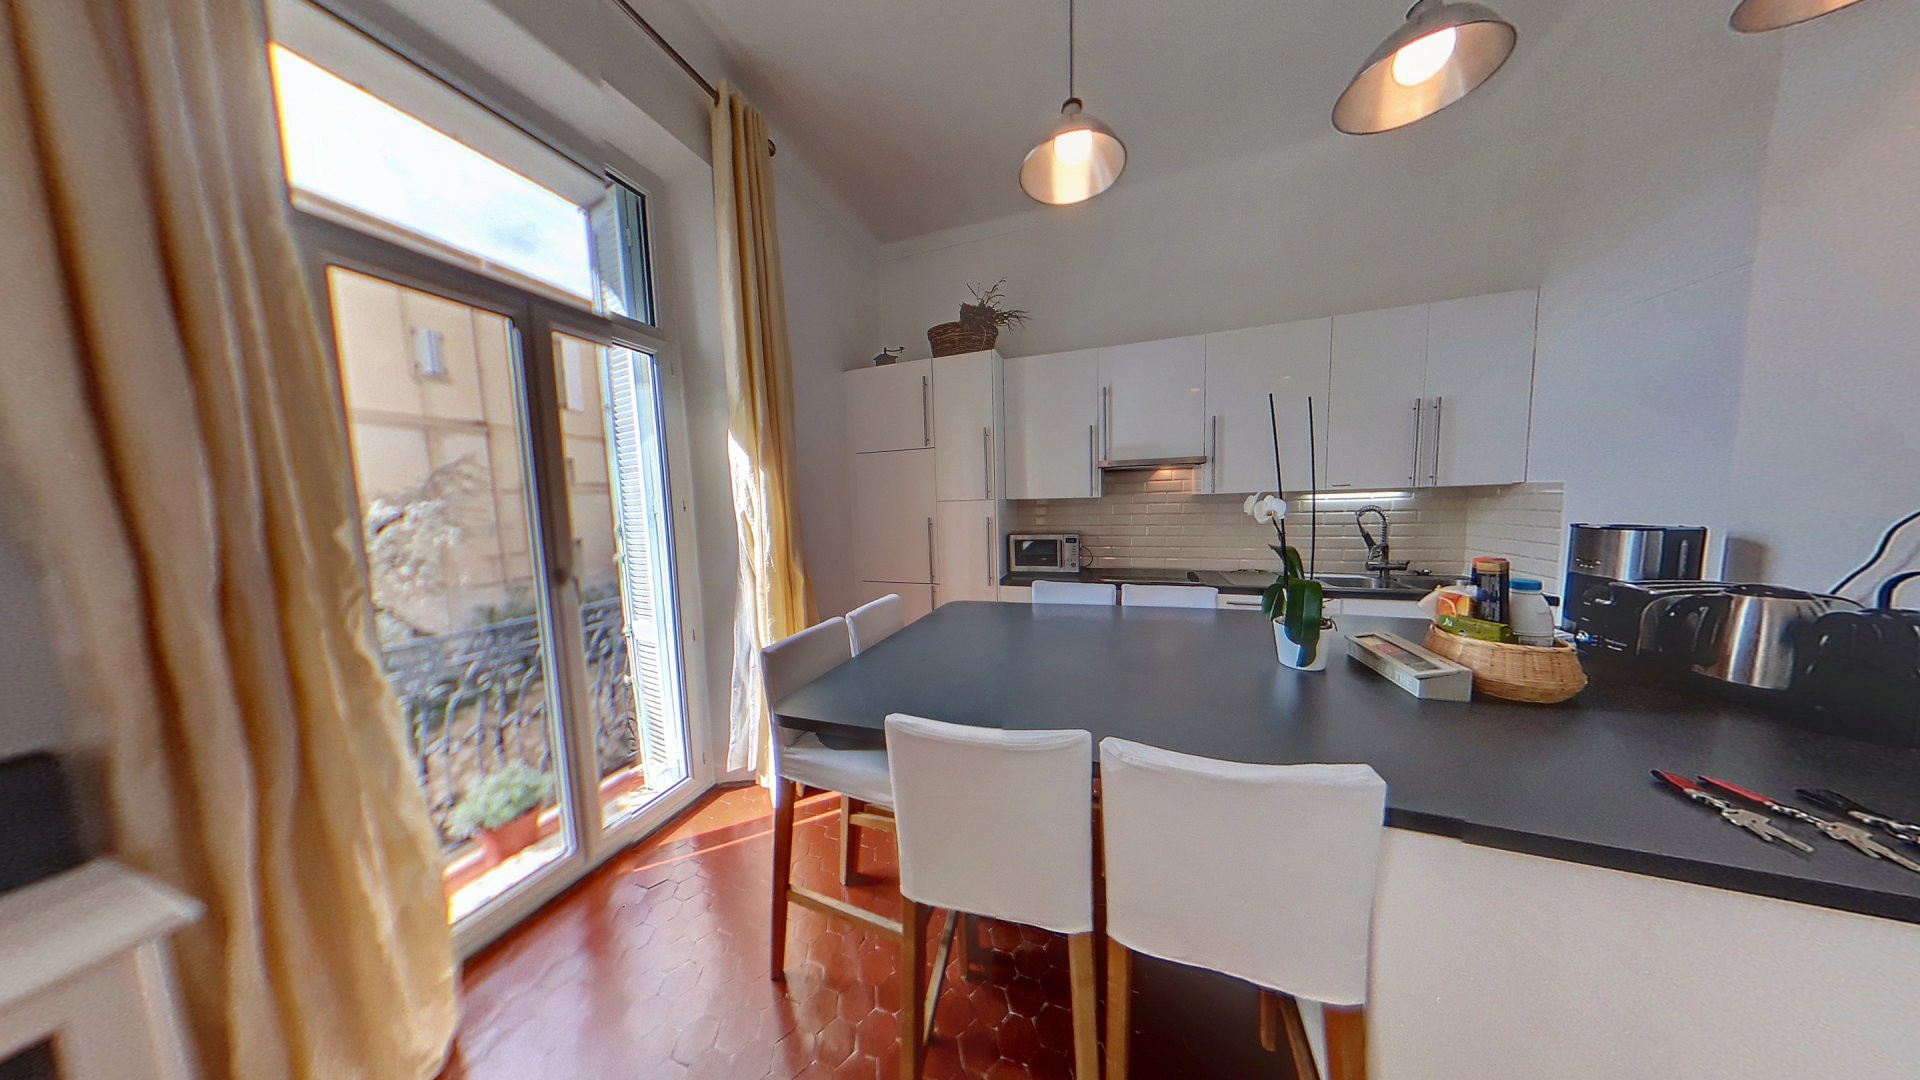 Cannes Stanislas renovated apartment for sale in a Bourgeois building